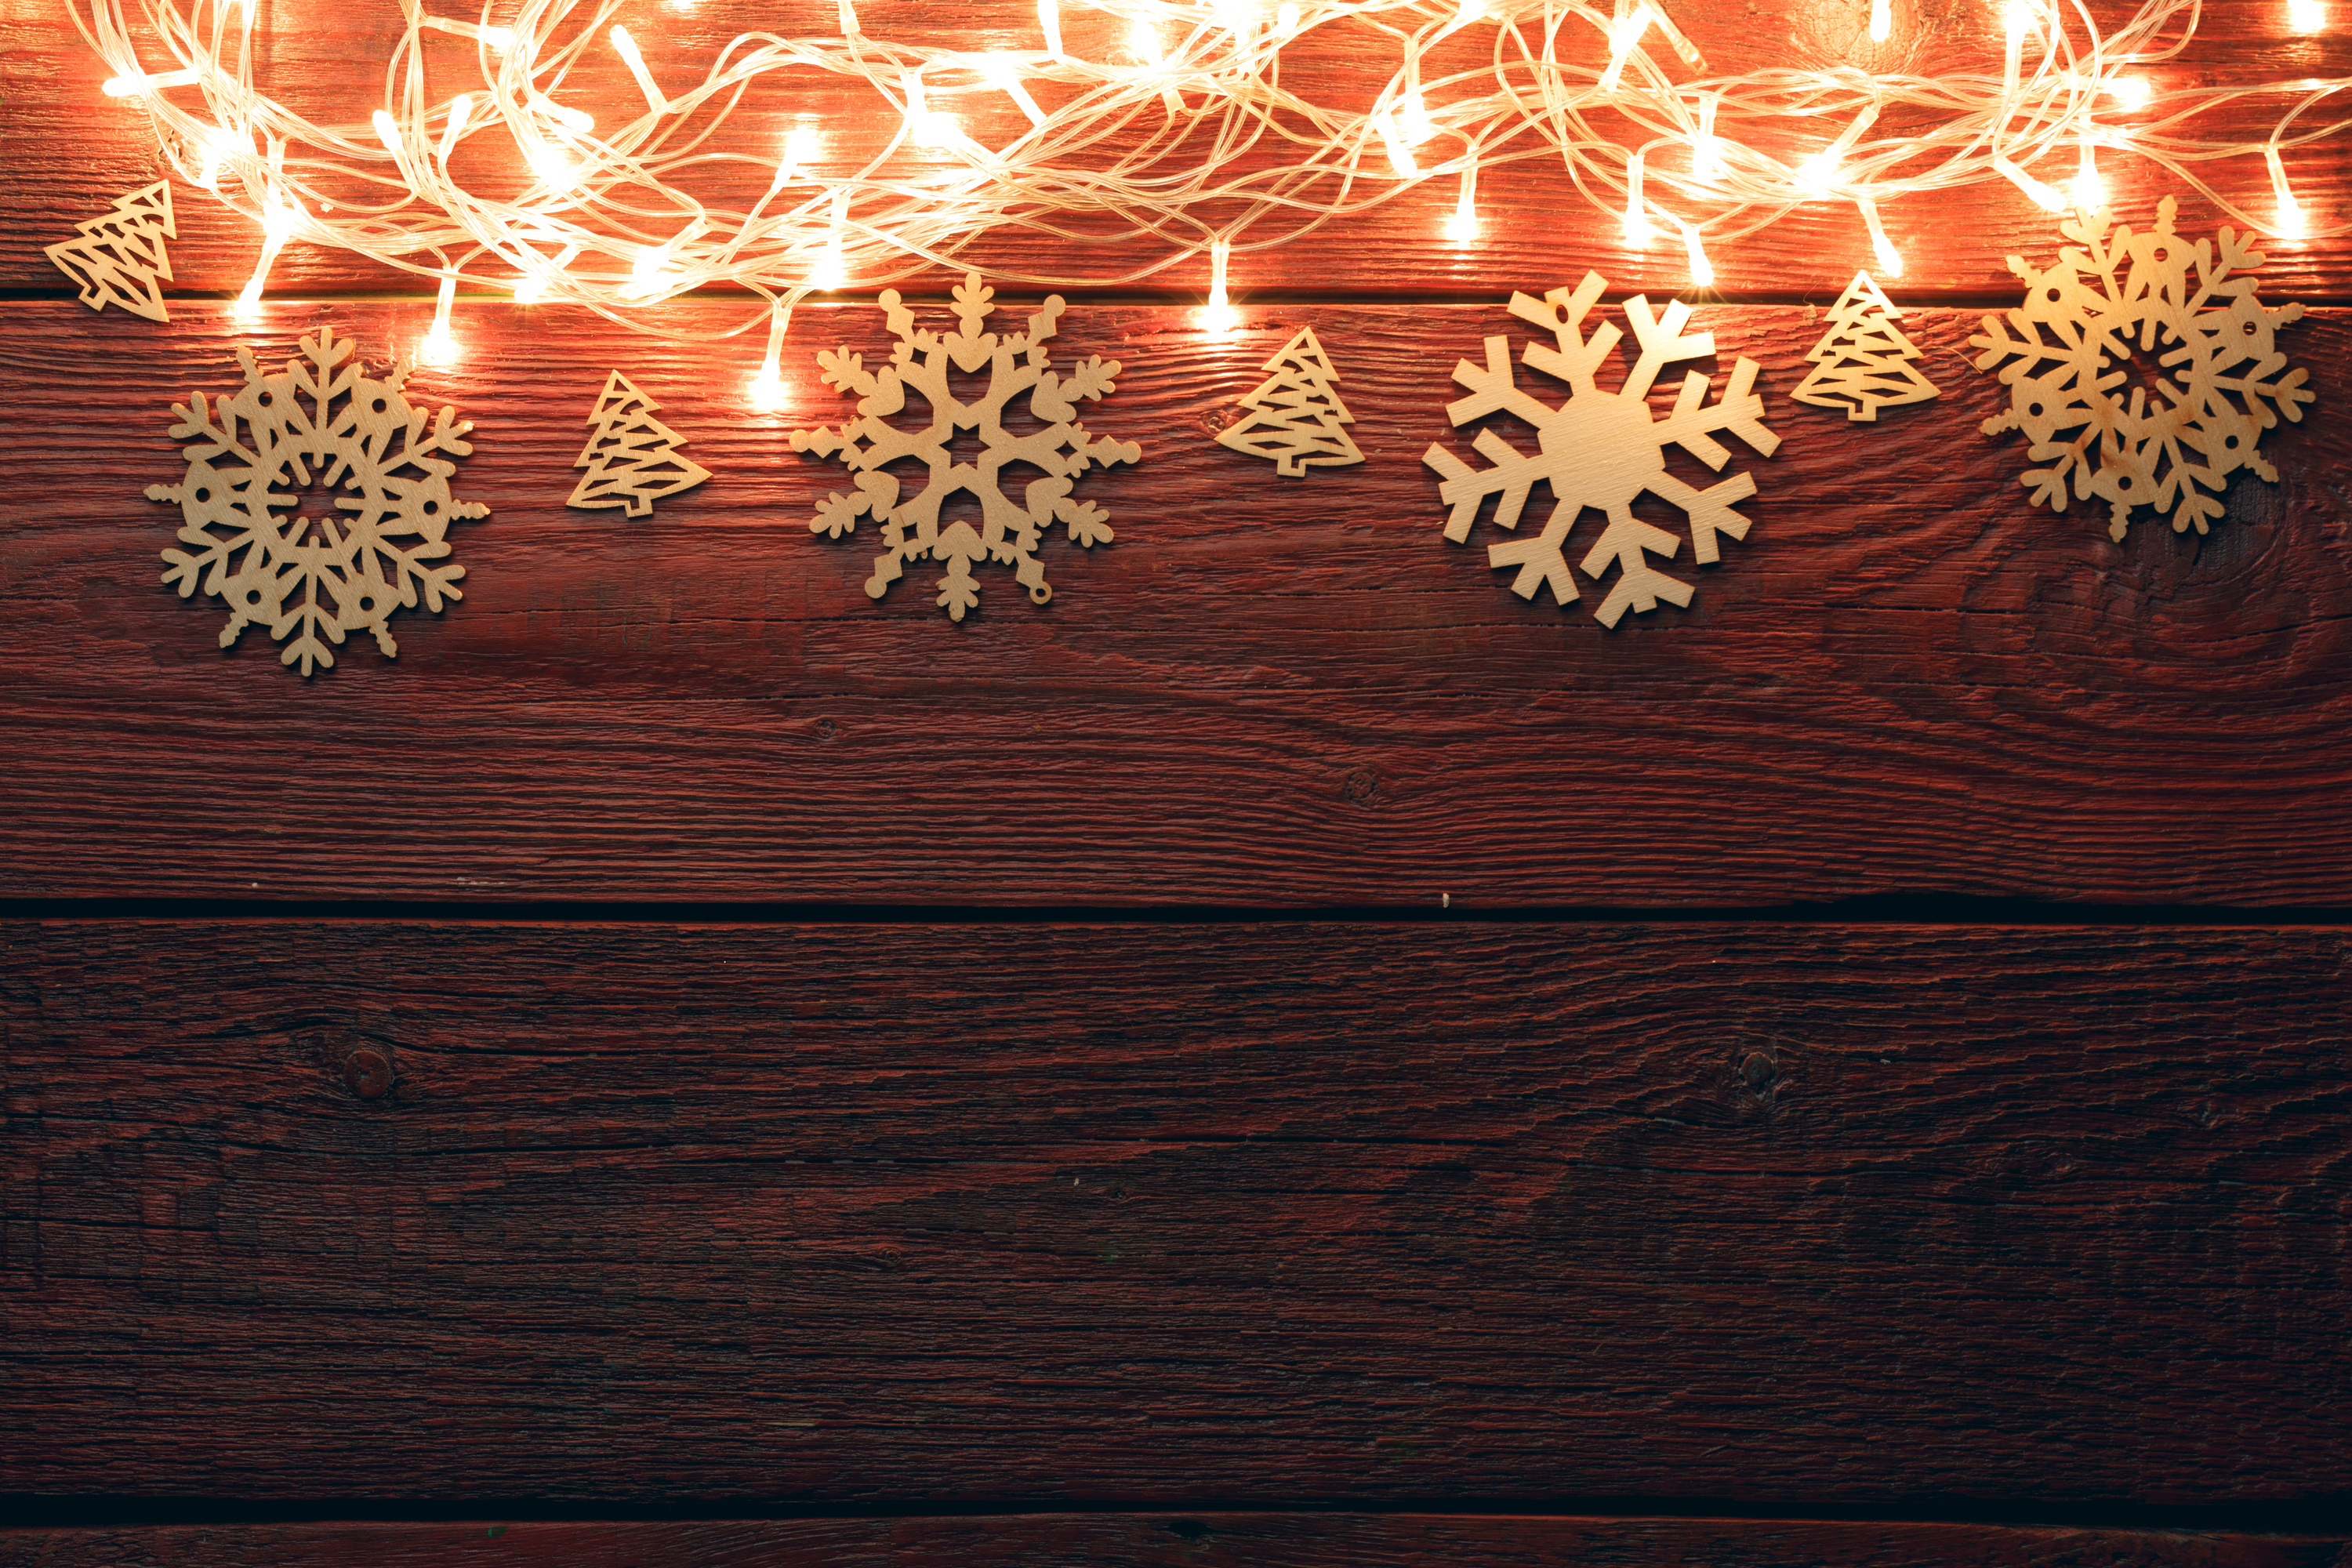 There is something about winter and snowflake decor that just fit together perfectly. These DIY snowflake holiday decor ideas will get you excited for the holiday season.